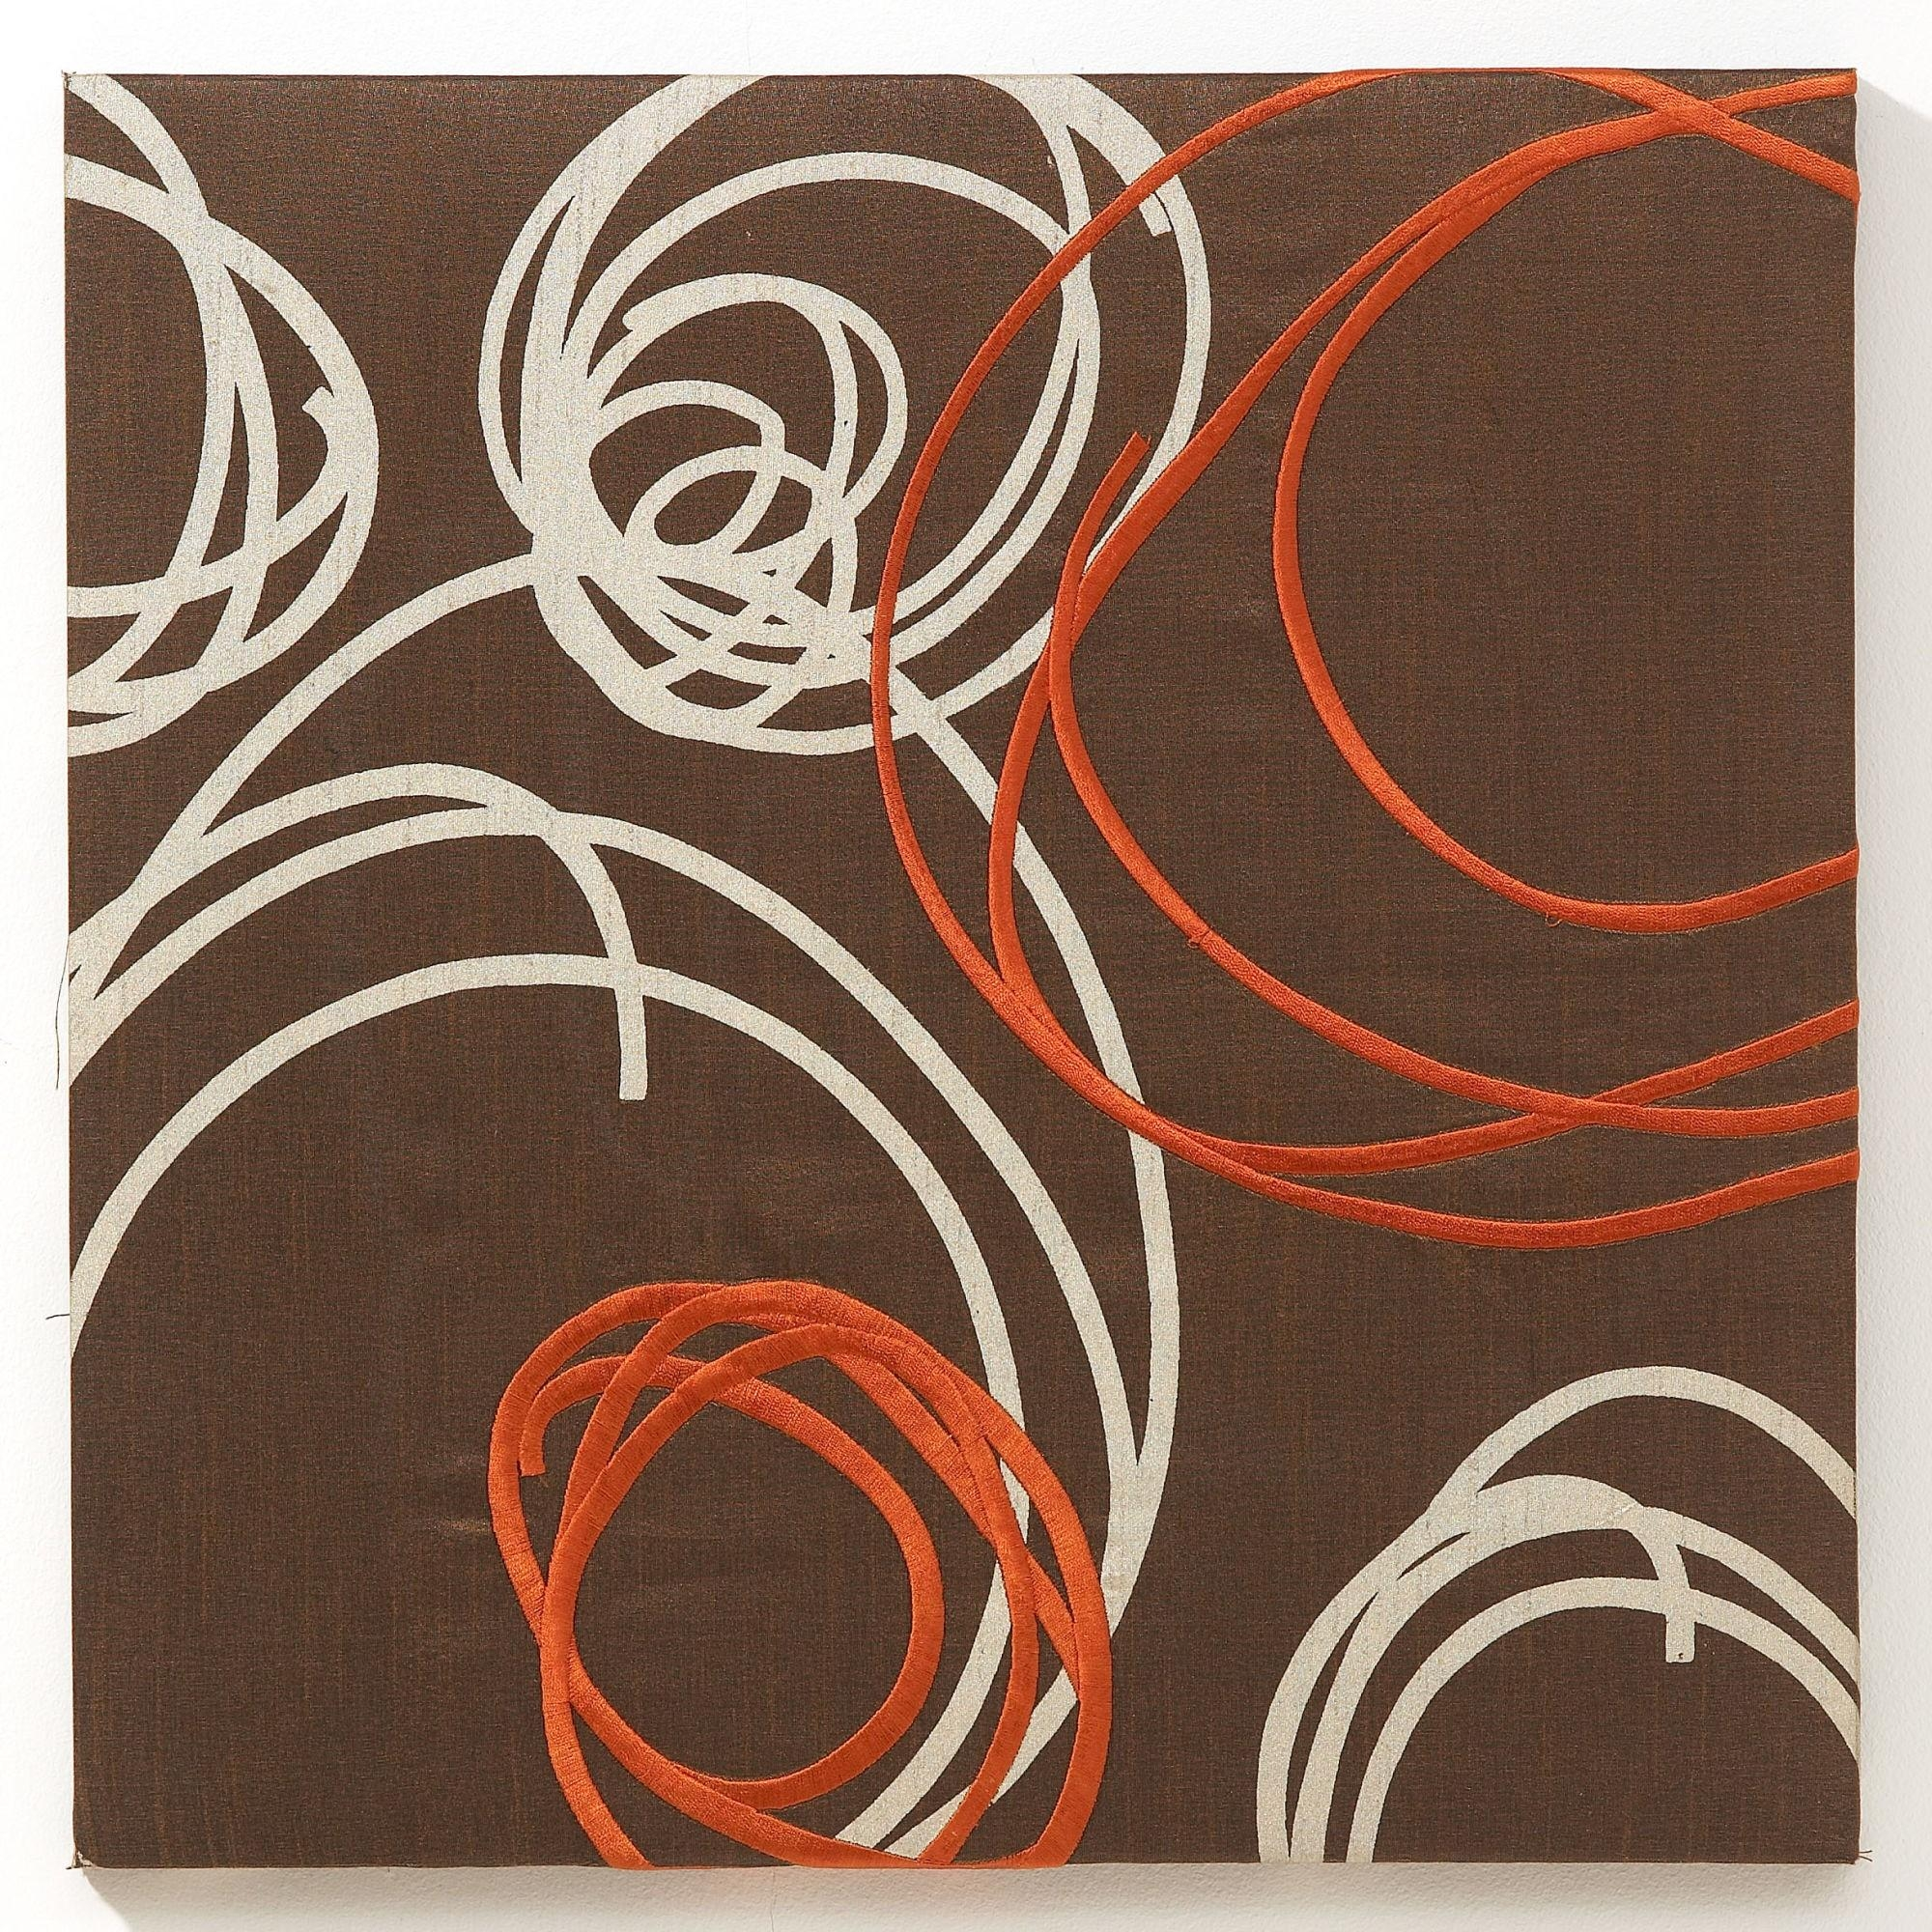 Wall Art Designs: Orange Wall Art Orange Wall Art Wood Wall Art Throughout Graham & Brown Wall Art (Image 13 of 20)